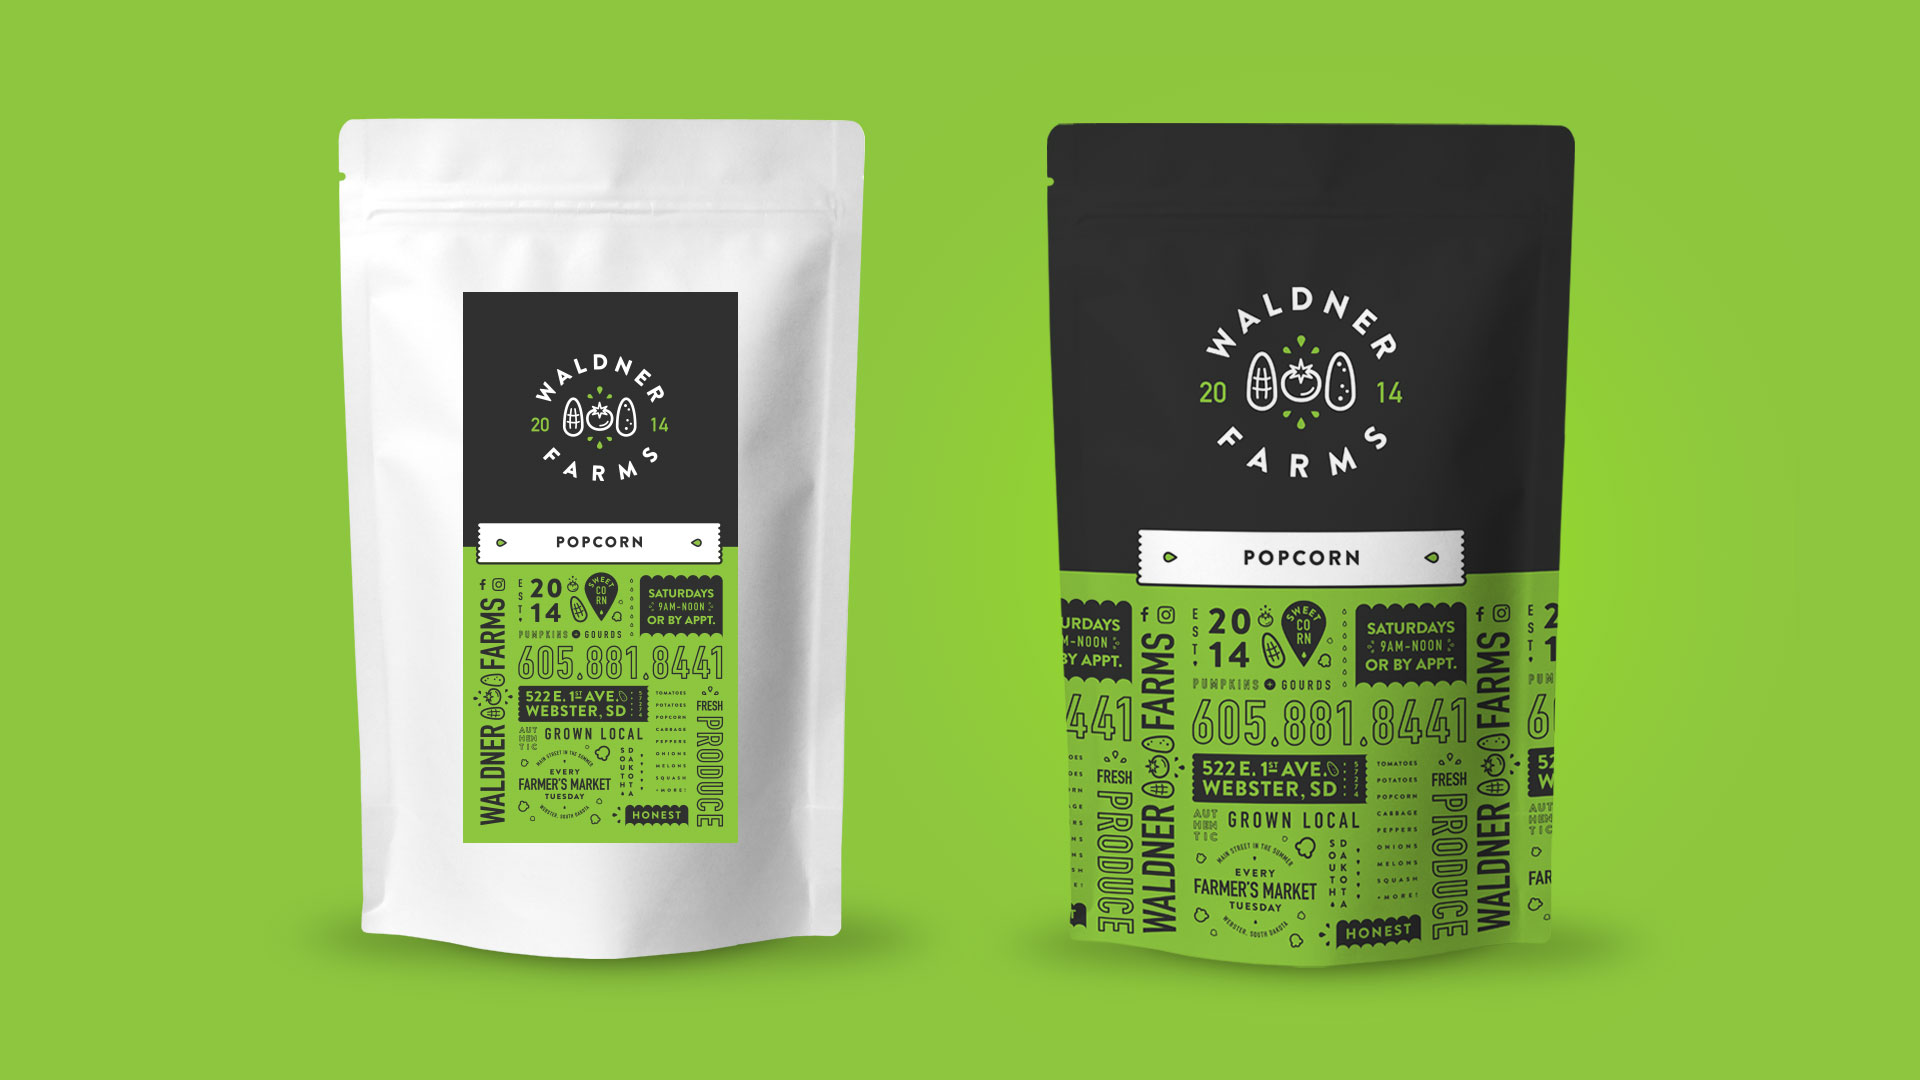 waldner-farms-packaging